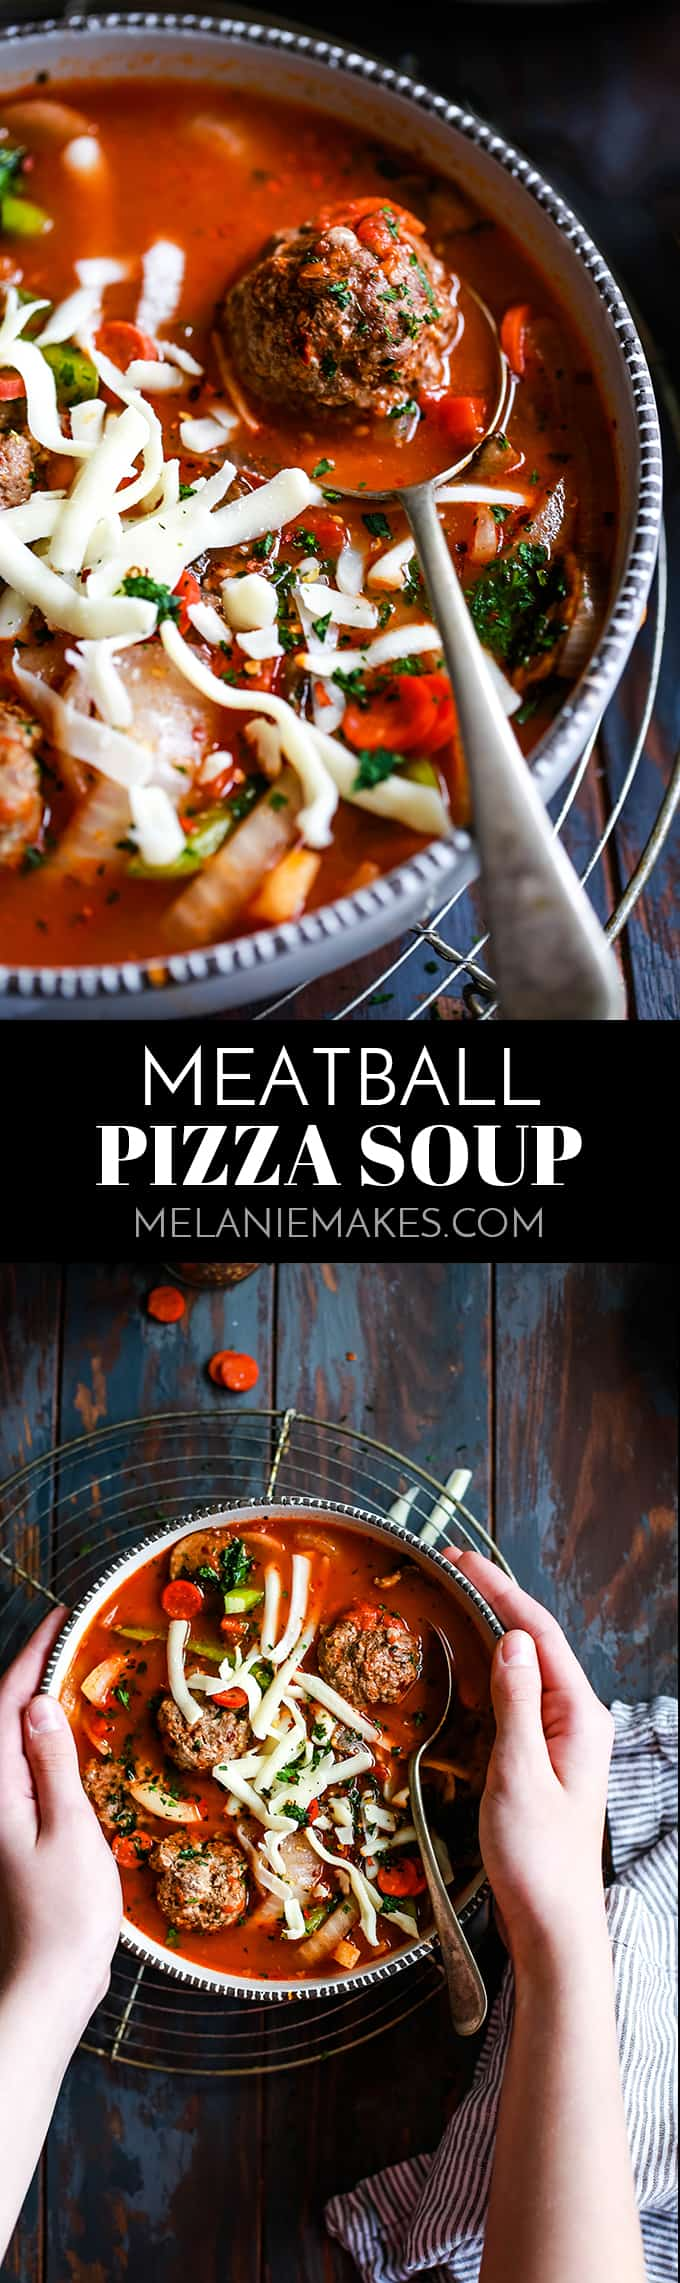 Thanks to a shortcut, this Meatball Pizza Soup takes just 10 minutes to prepare.  Meatballs join your favorite pizza toppings in this comforting soup. #meatballs #meatballsoup #pizza #soup #easyrecipe #cheese